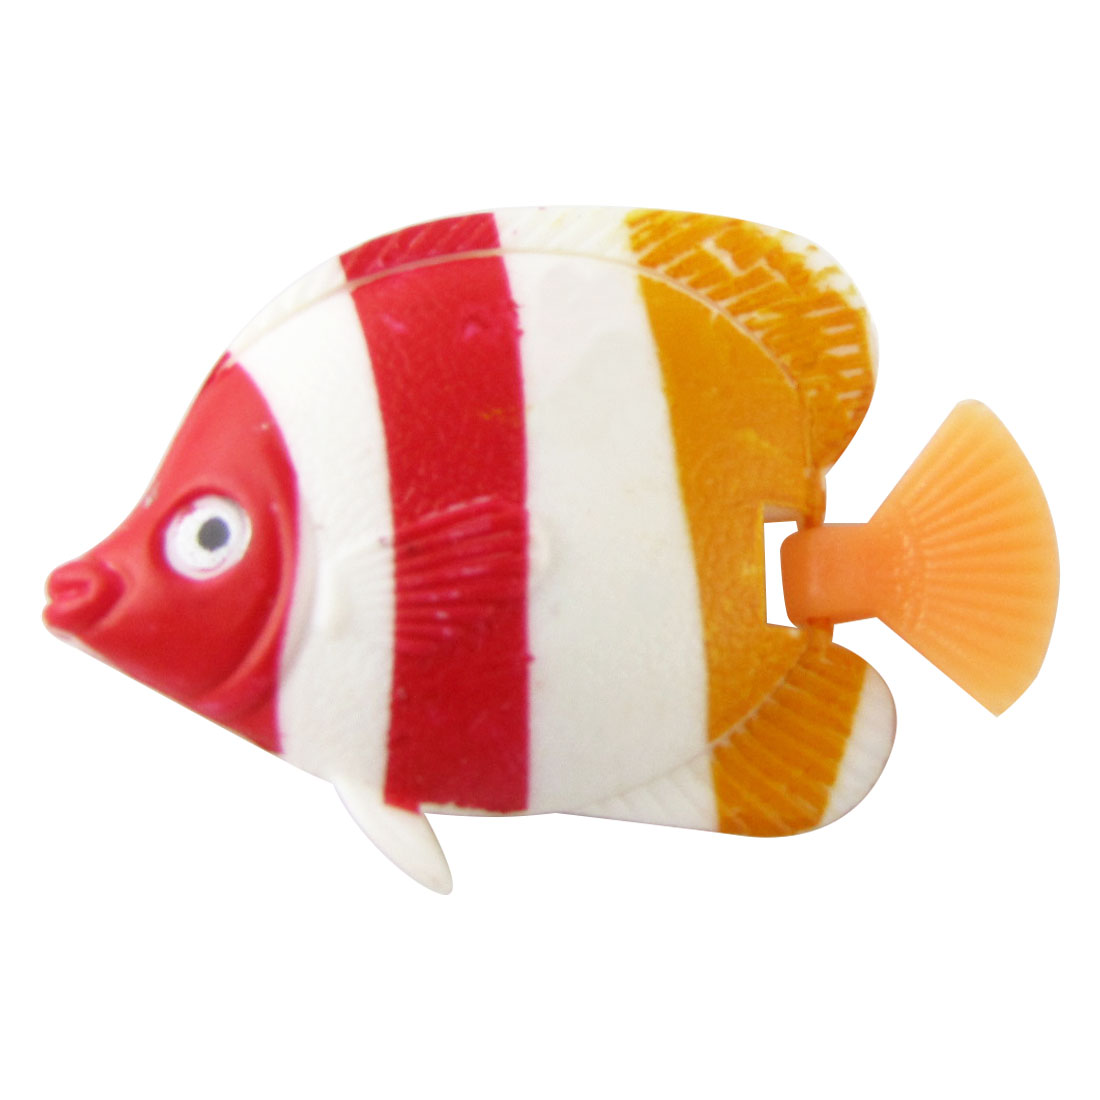 5 Pcs Realistic Colors Mini Plastic Fish Aquarium Ornament